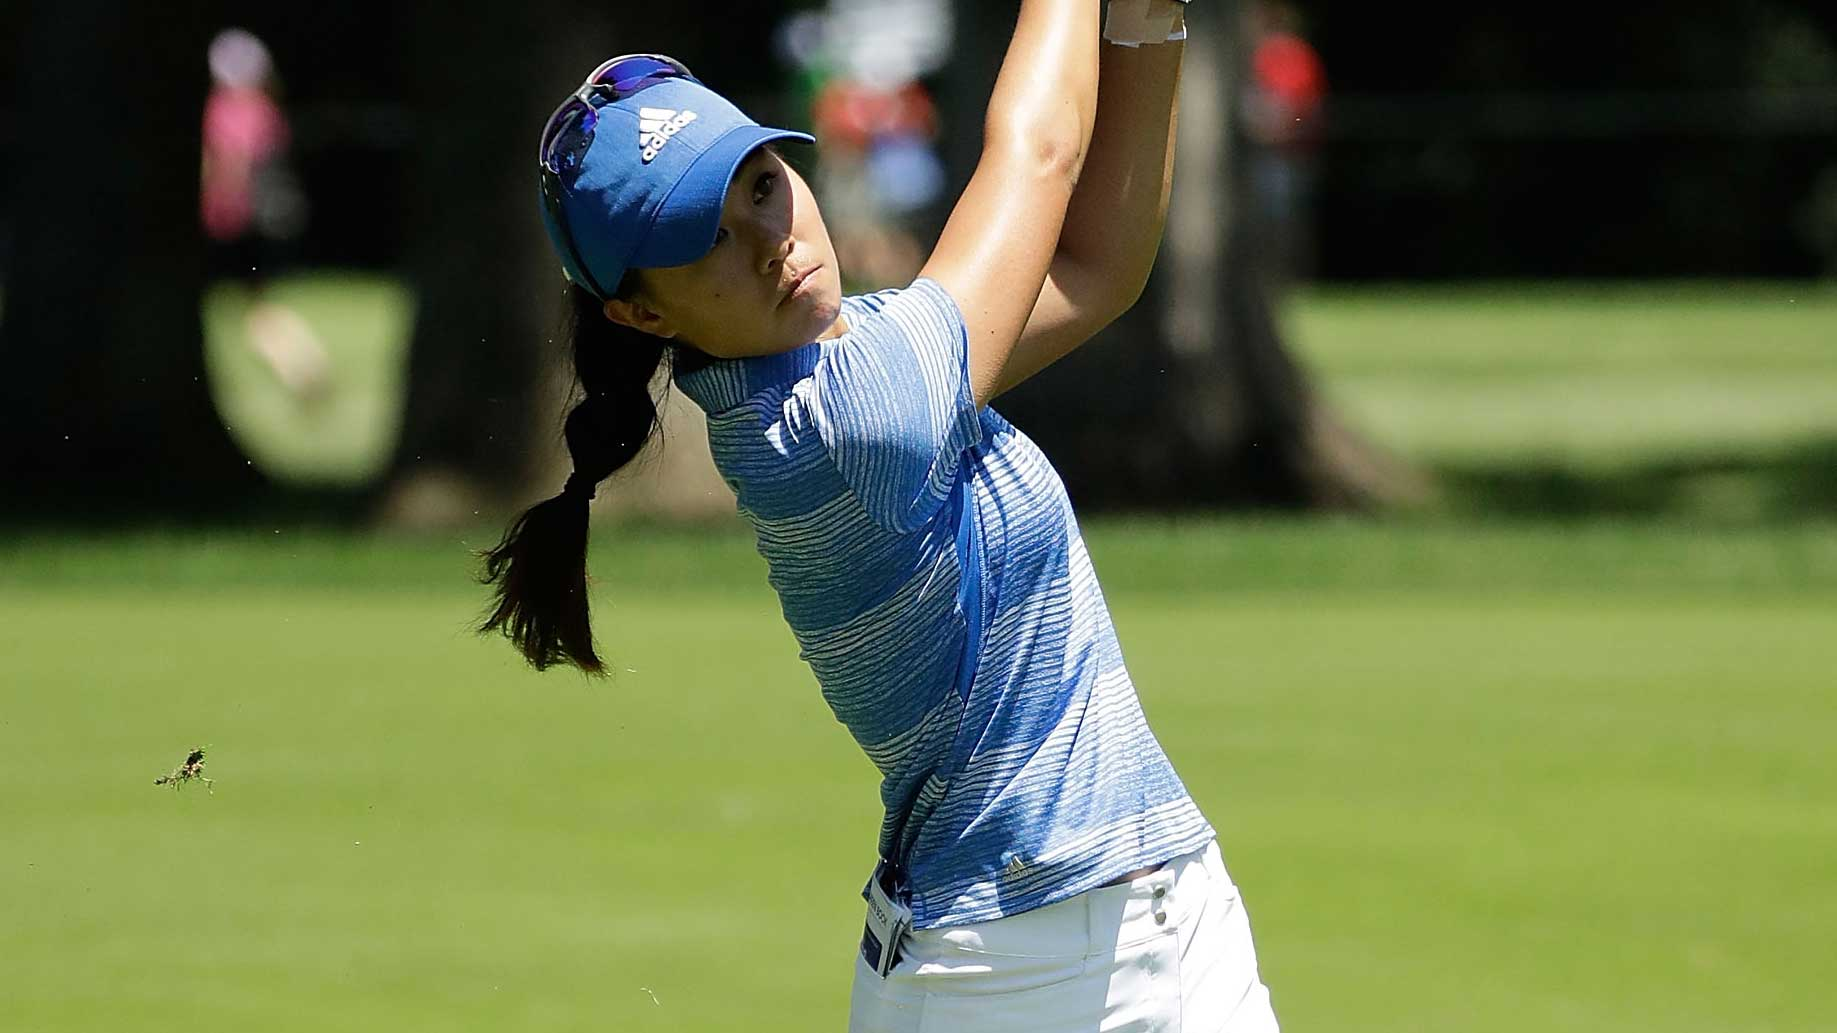 Danielle Kang hits her approach shot on the second hole during the final round of the 2017 KPMG PGA Championship